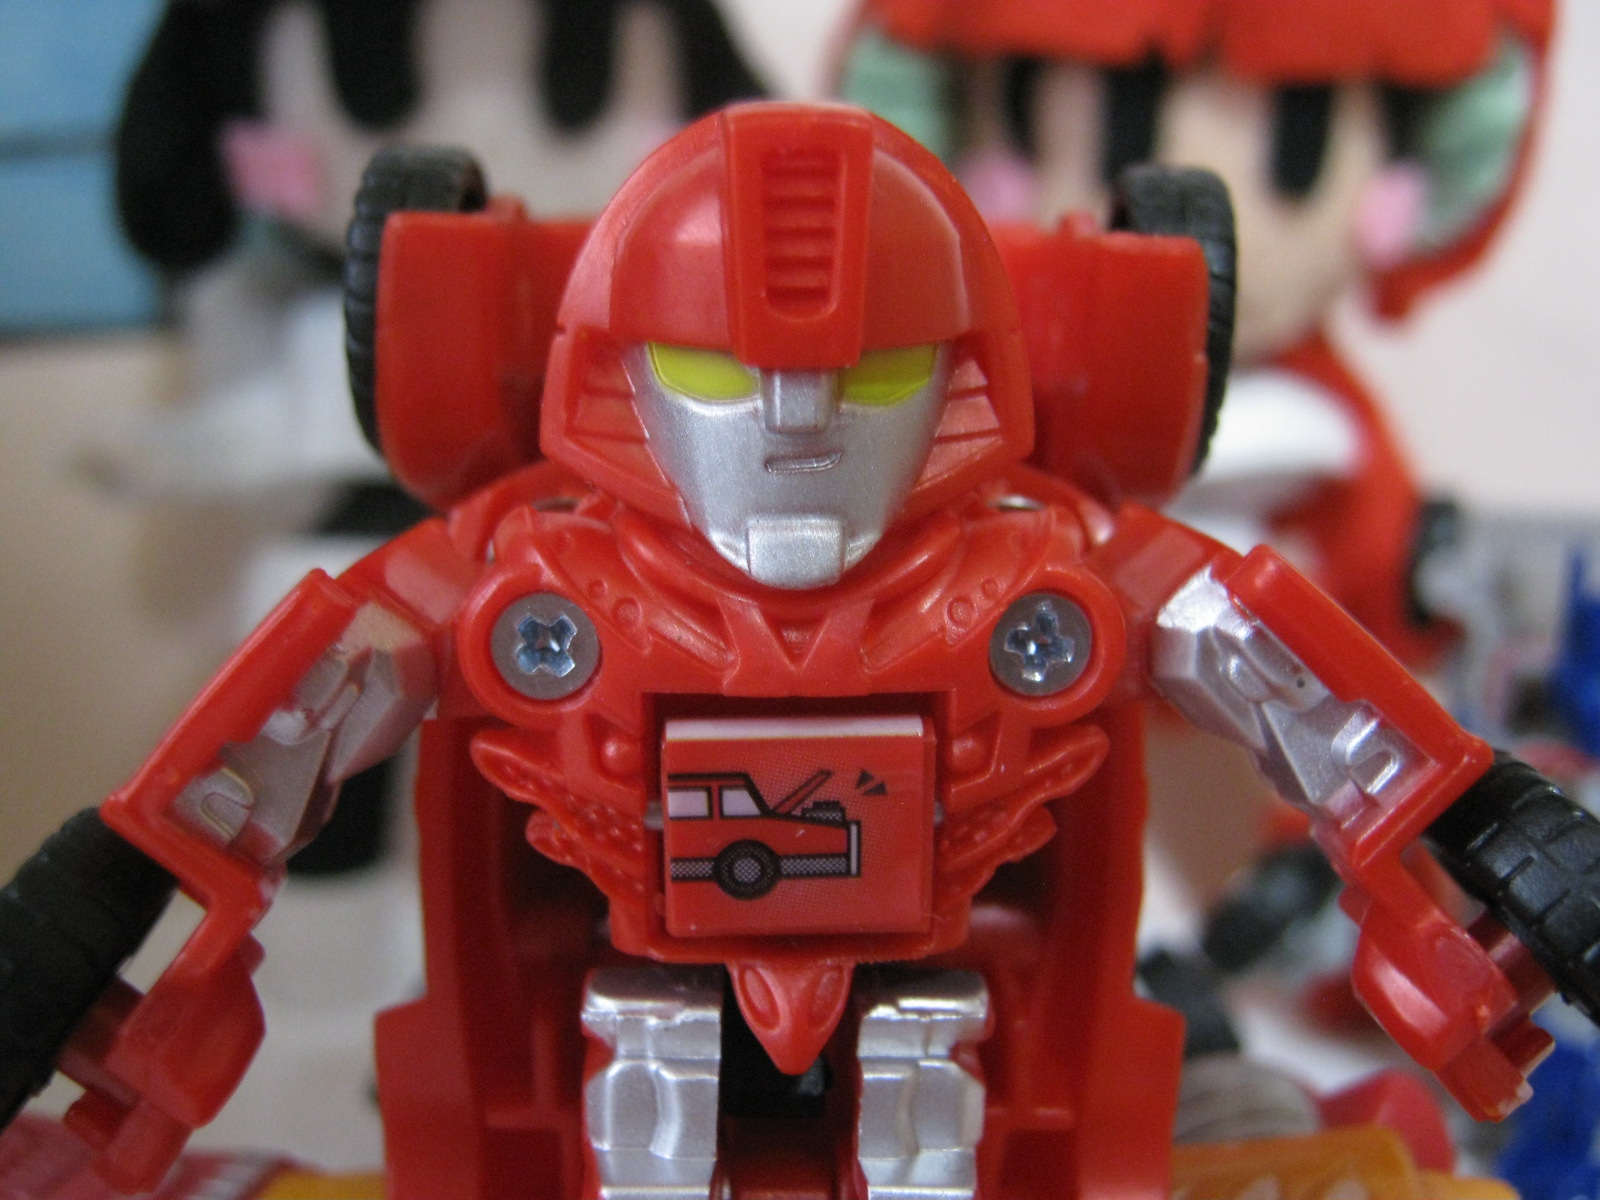 transformers takara tomy toy Be cool japan bot shots red mirage face エンジントラブル